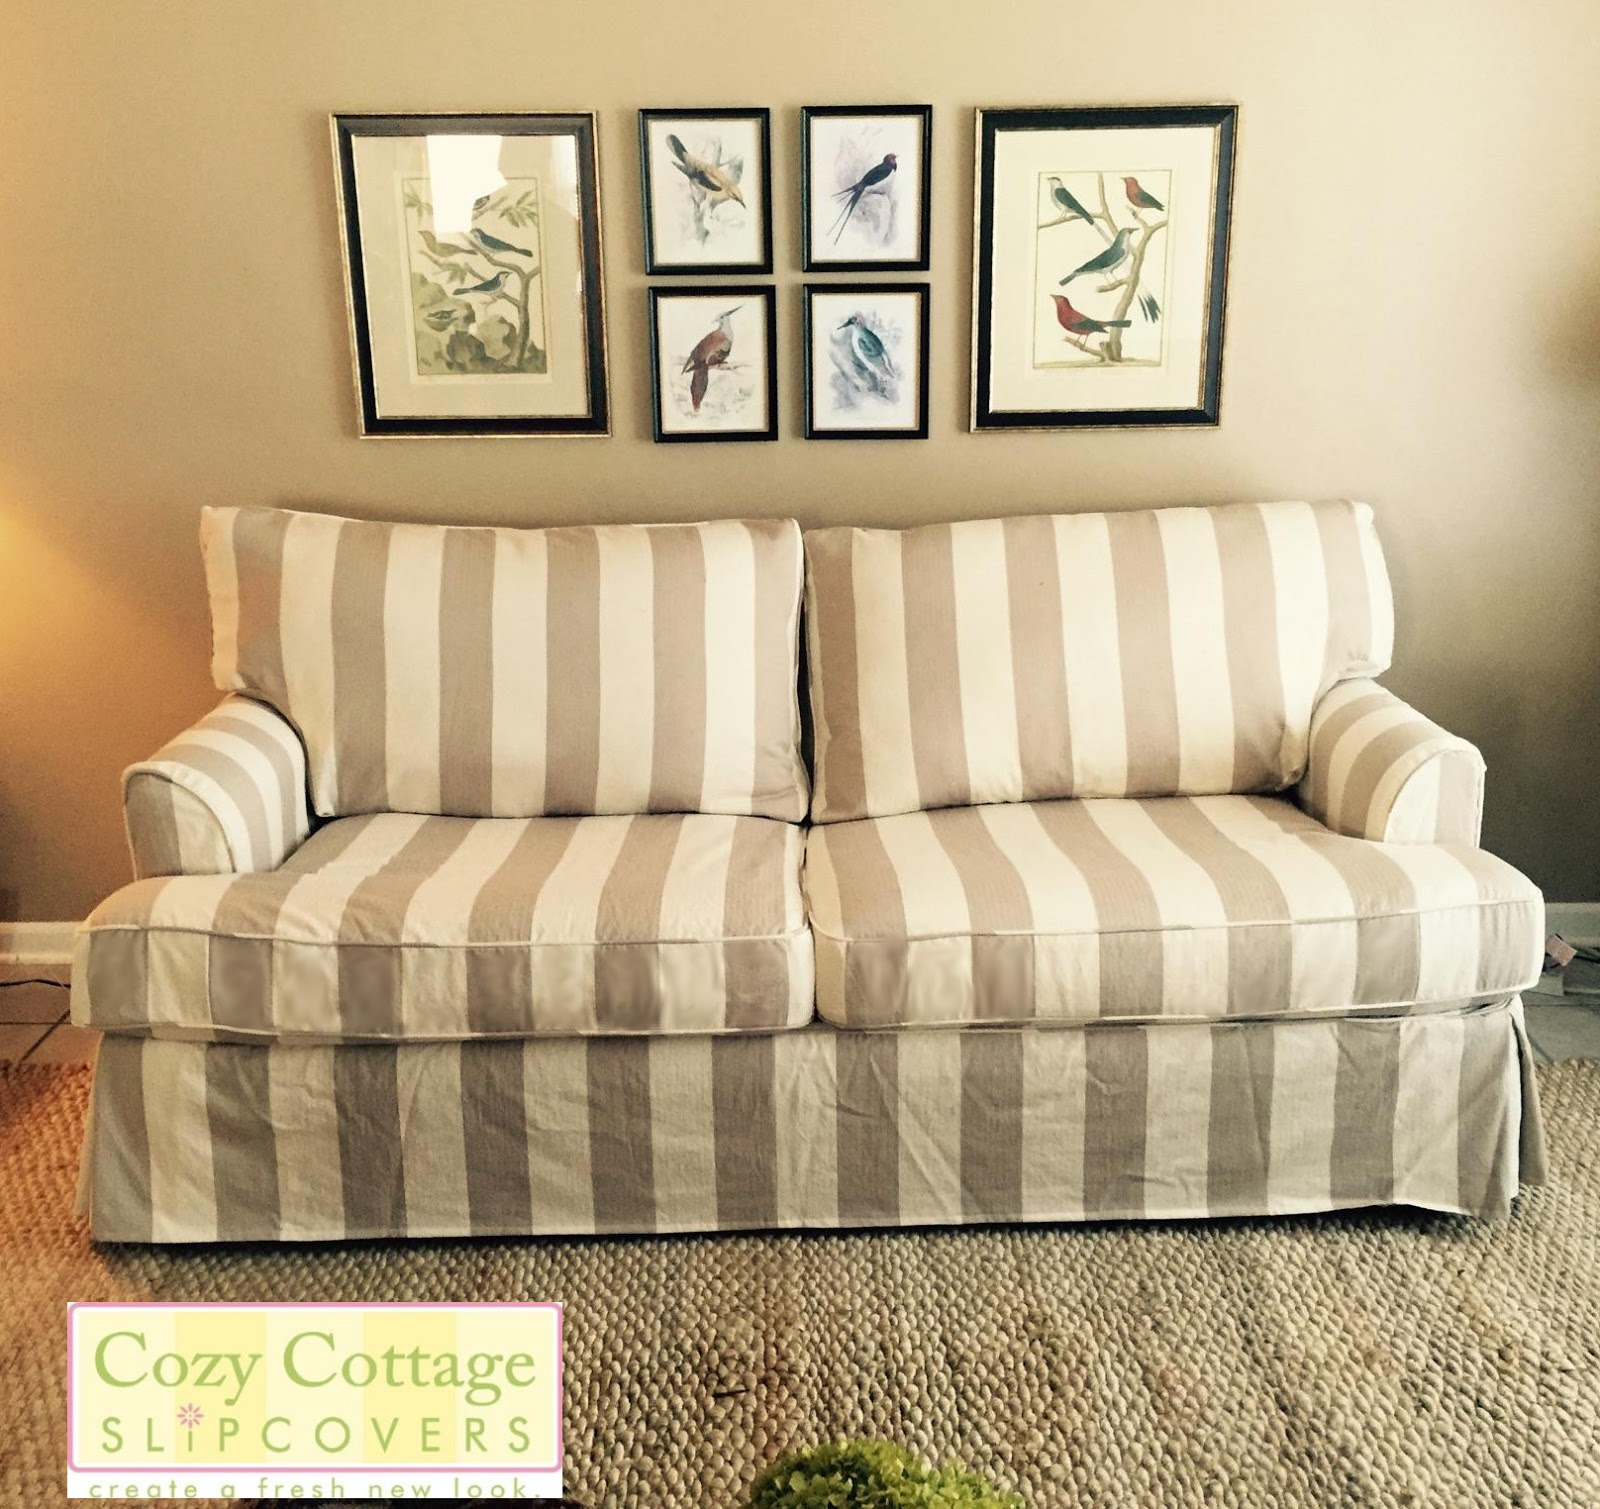 Cozy Cottage Slipcovers Pet Friendly Striped Slipcover